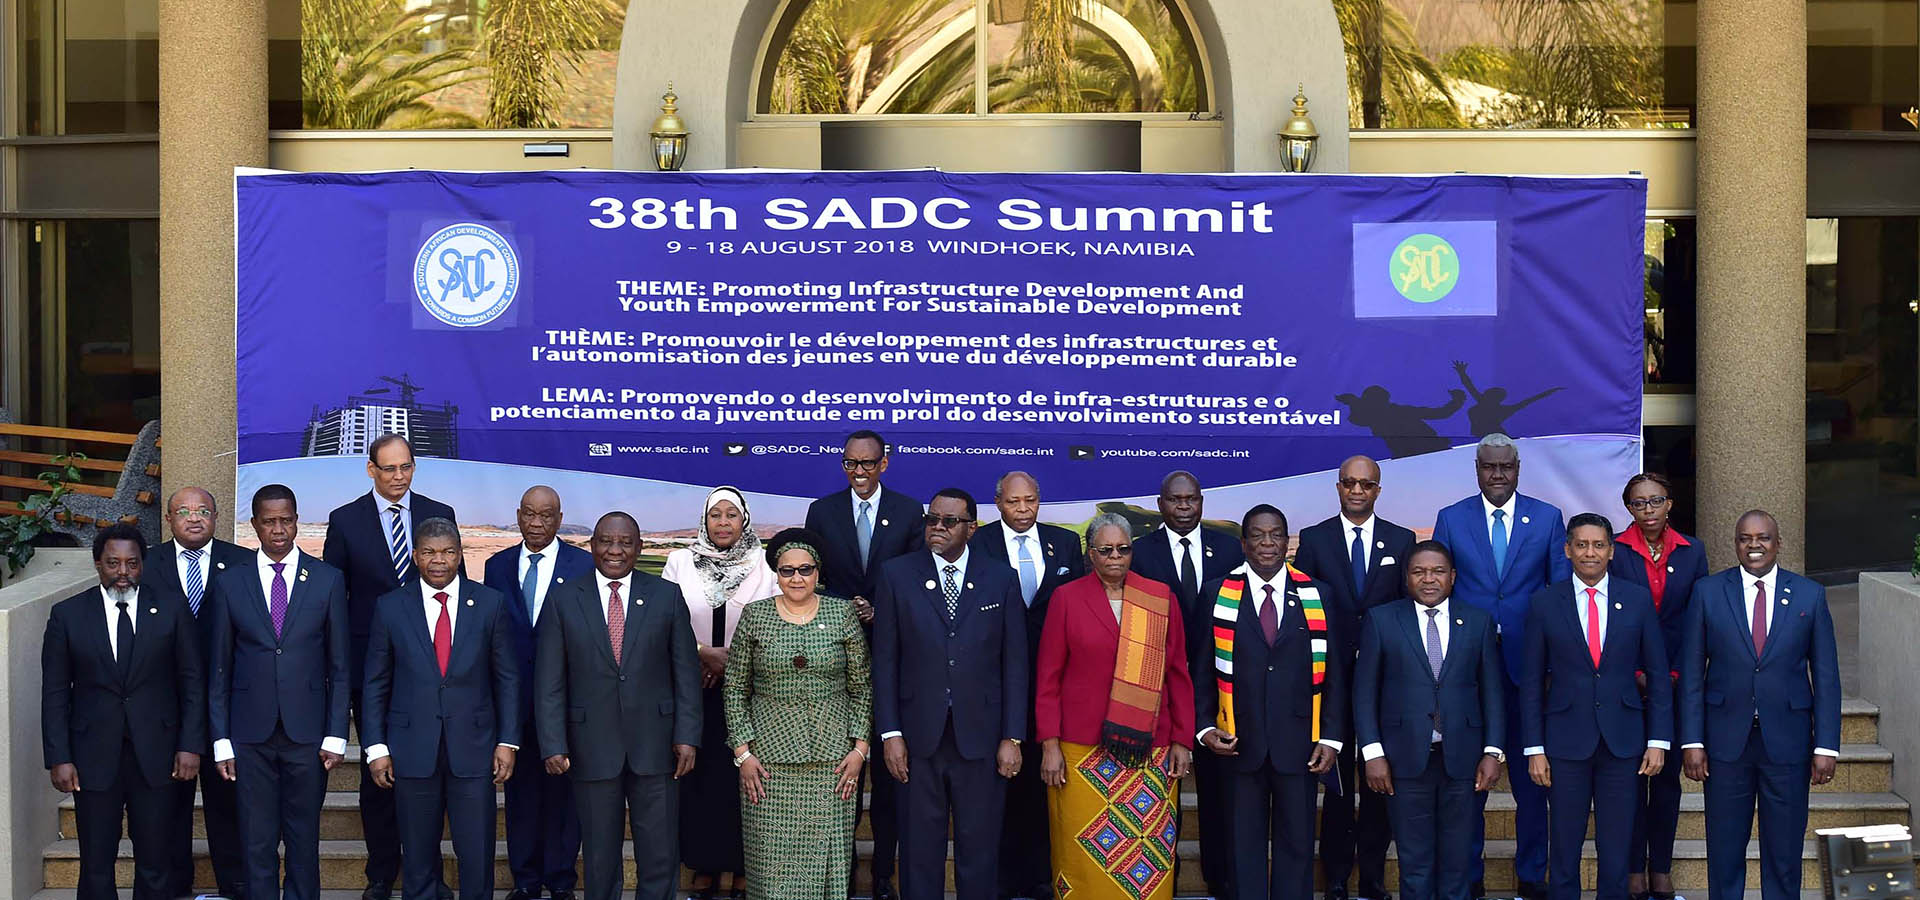 PESA SADC 38th Summit 2018